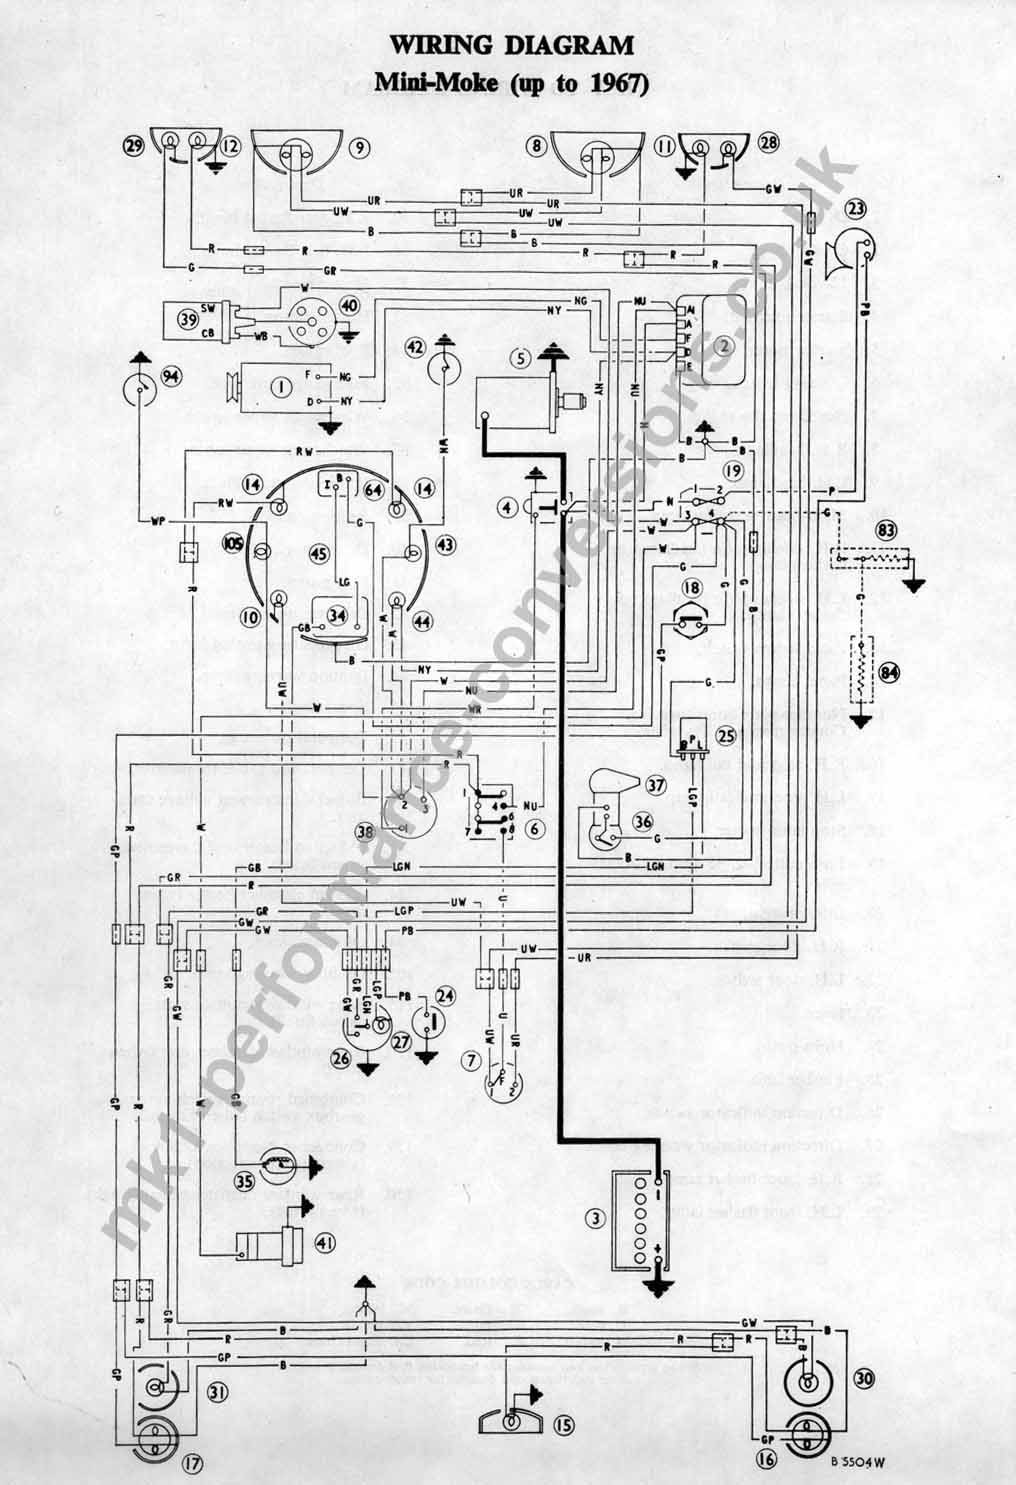 mk1_moke_wiring technical (electrical) escort mk1 wiring diagram at arjmand.co